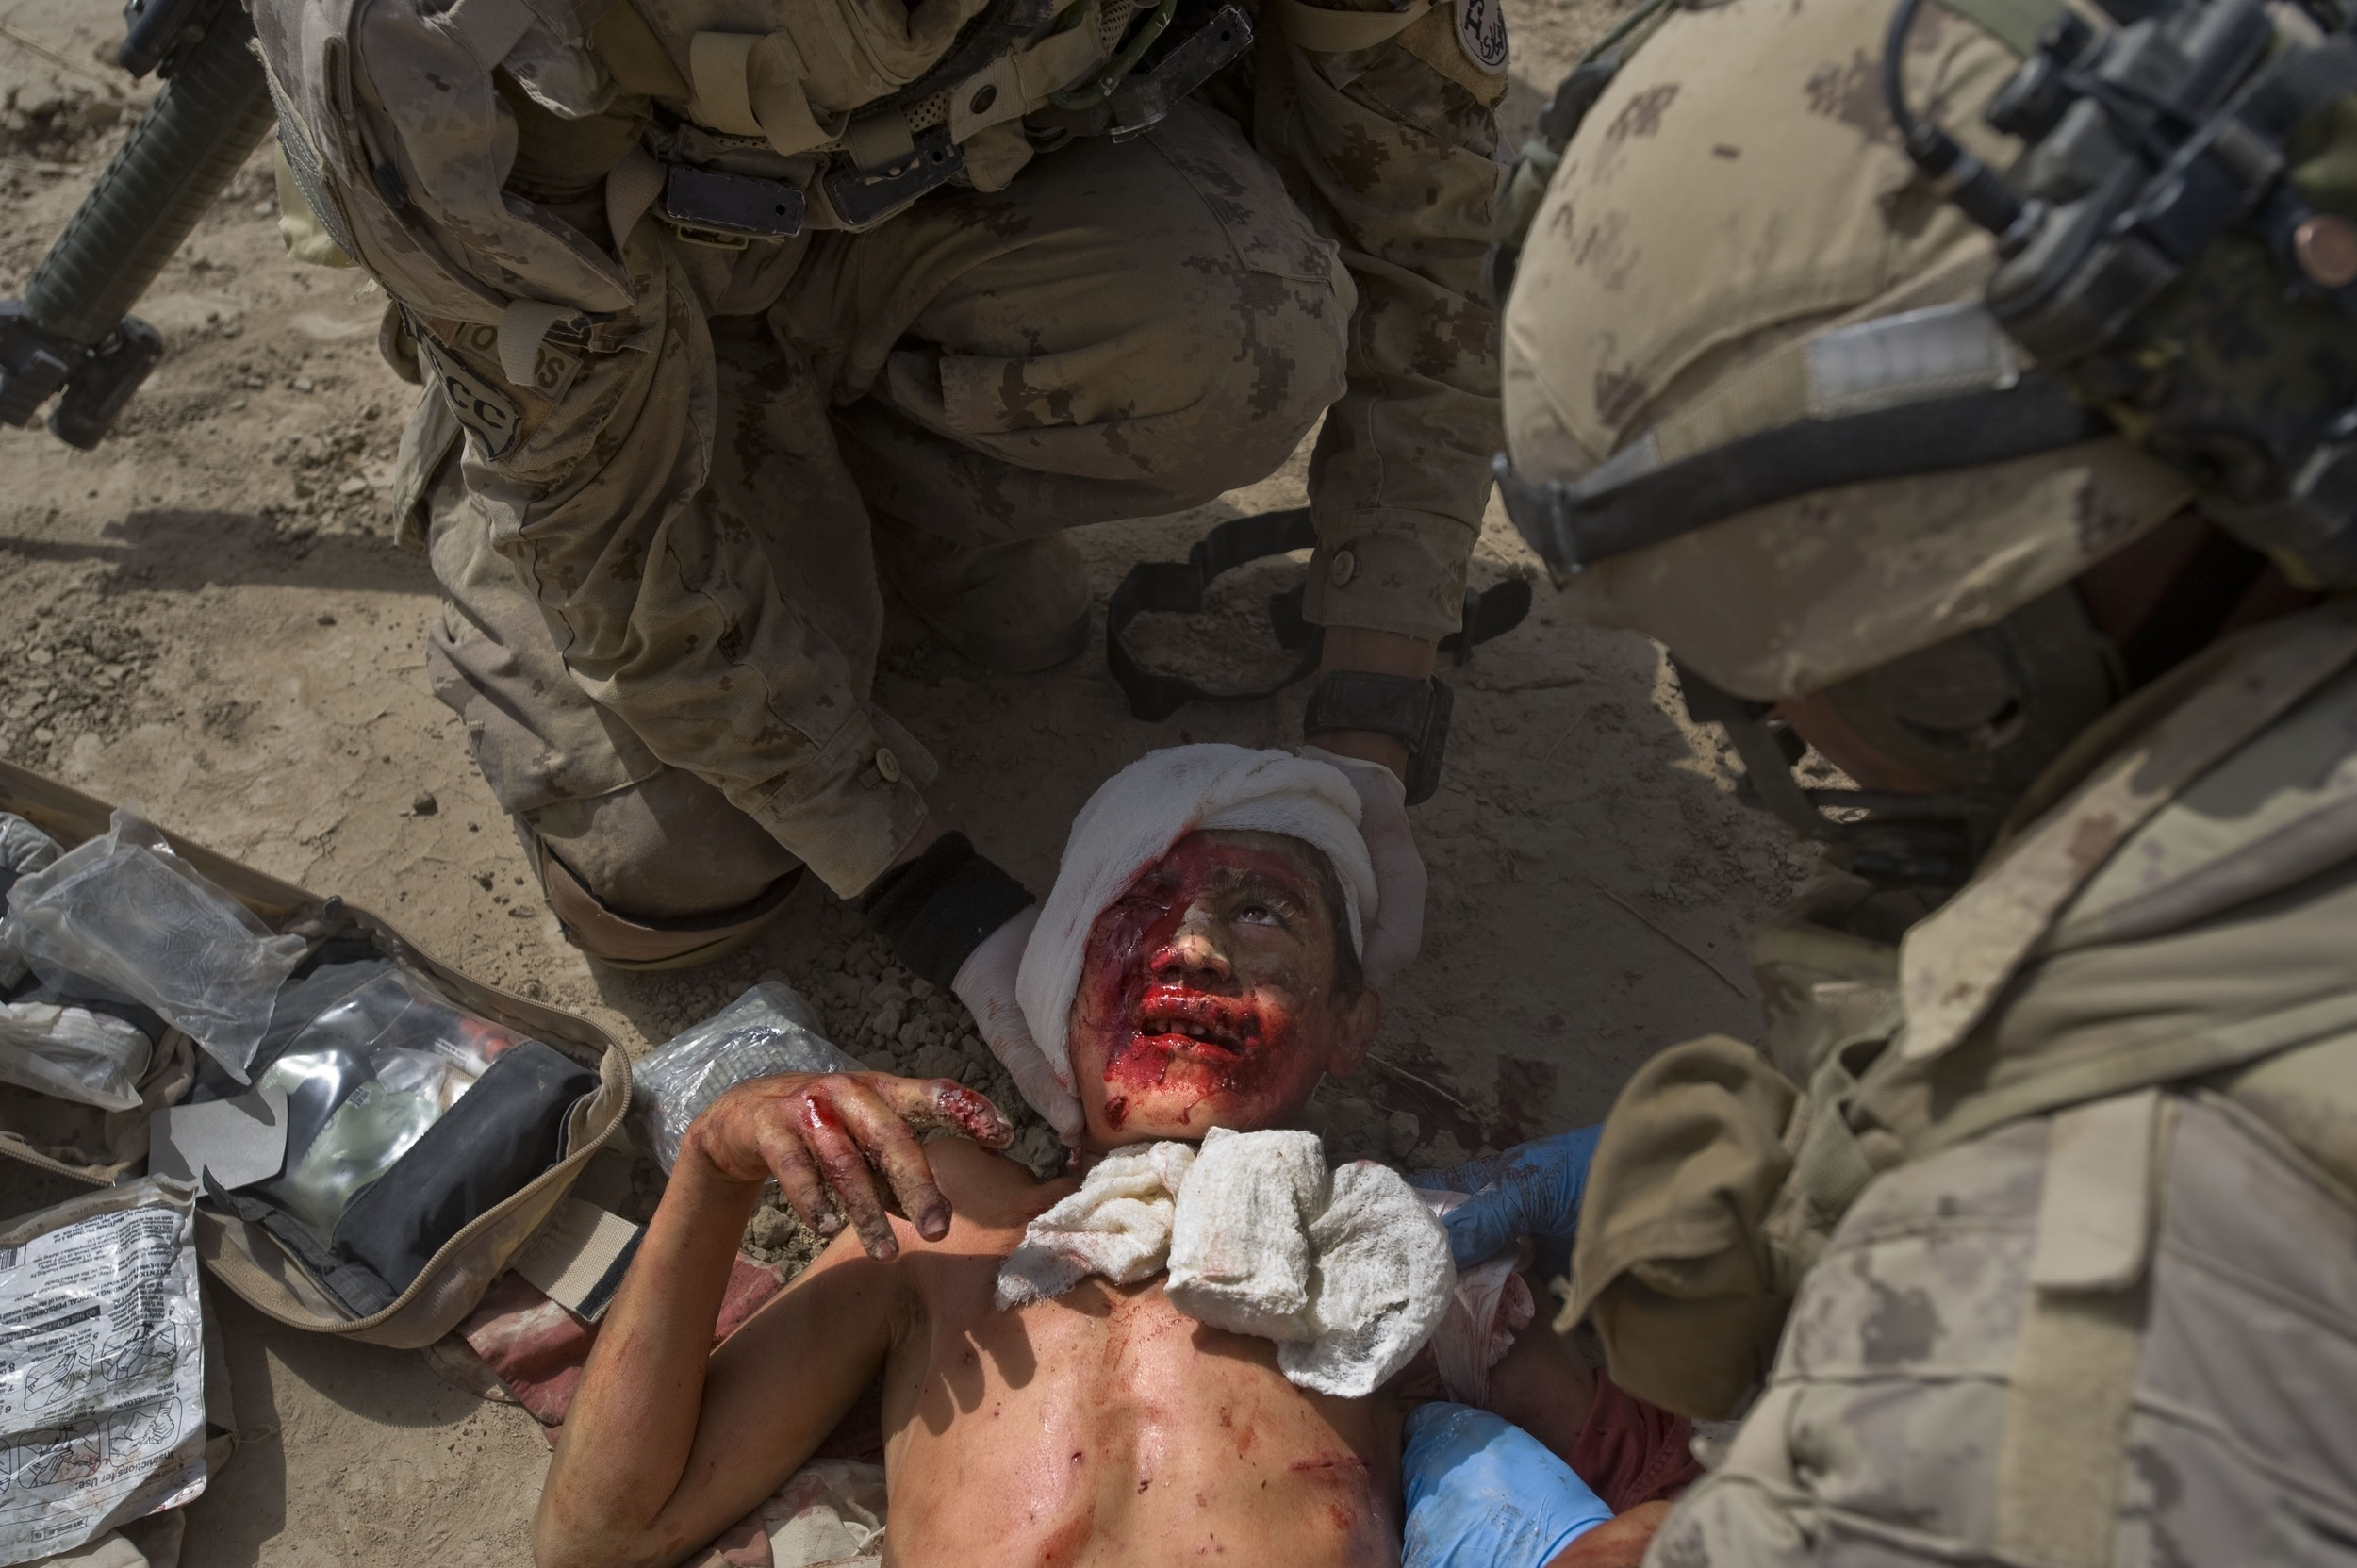 Canadian soldiers give first aid to a critically wounded 8-year-old Afghan boy after he was critically injured by an Improvised Explosive Device (IED) set by Taliban insurgents looking to target Canadian troops on patrol in the village of Fathullah in Panjwa'i District, Kandahar Province.Jul. 08, 2010 ©Louie Palu/Alexia Foundation/ZUMAPRESS.com